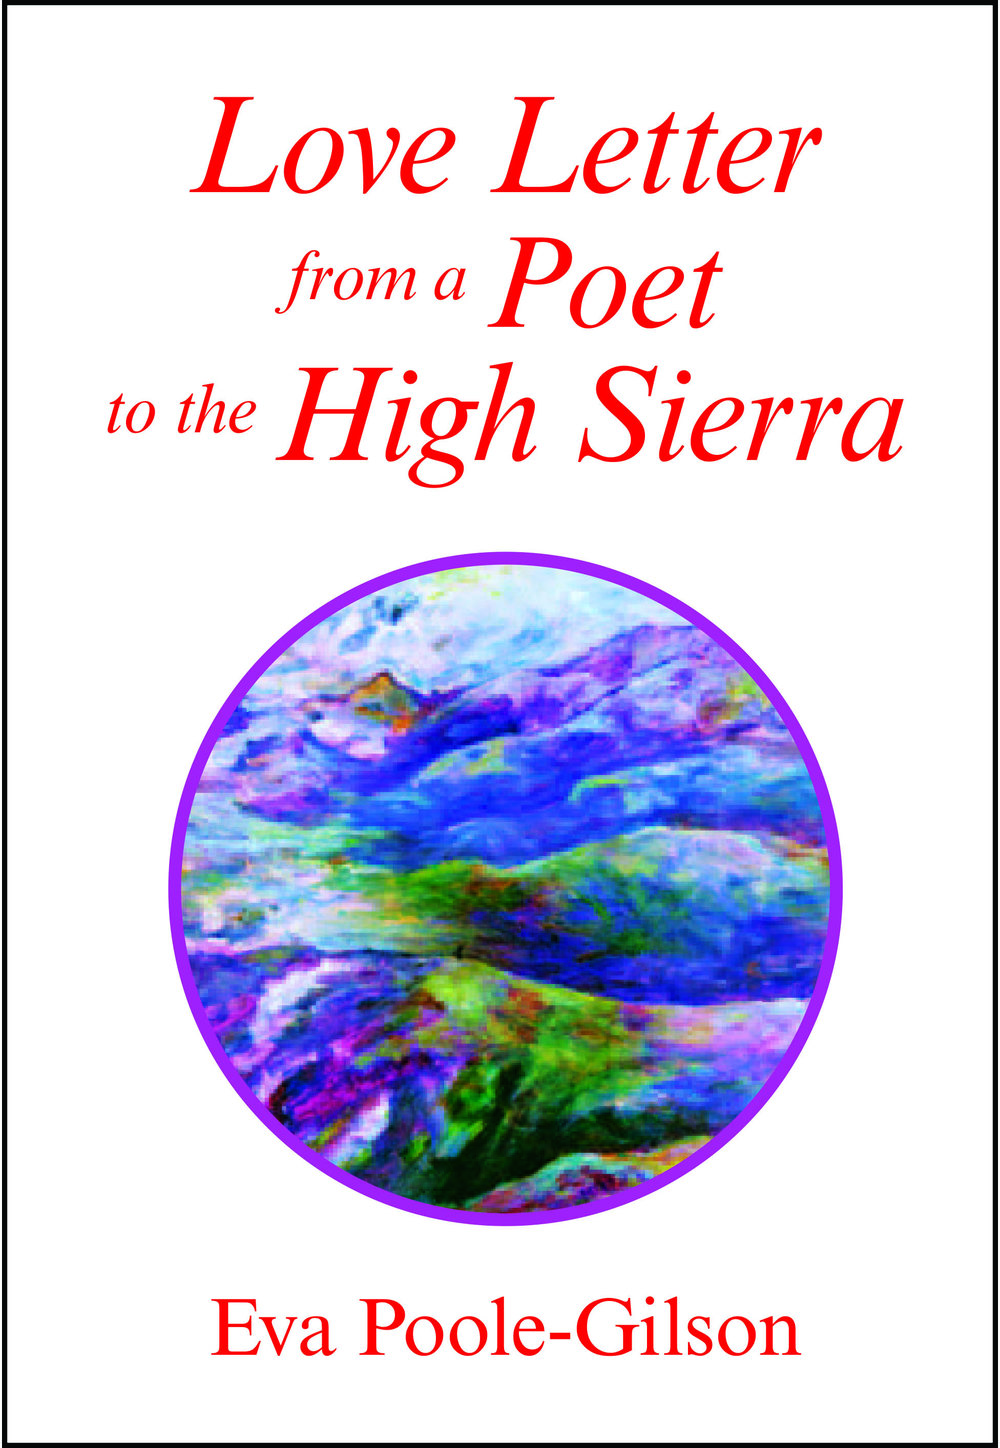 "Love Letter From a Poet in the High Sierra -      ""If you read [Love Letter from a Poet to the High Sierra], and then were asked to point out its author in a crowd, you'd probably pick Eva Poole-Gilson. Small, strong, well-made and radiating vitality, this book is a written reflection of its author….Poole-Gilson brings us the exuberant vision of a newcomer, and an eagerness to be ravished by the beauty of her new surroundings.     She defines herself by that world beyond the one of things and men, and in doing so, tells not just about herself and her experience, but about the immense body of nature to which she (and we) are vitally connected. Now I realize that this all sounds too numinous for words, but poets have recognized this power since at least the 8th Century, when Li Po enthused, 'How I love to visit the mountains of renown!""– Cese McGowan, The Fessenden ReviewLetter from a Poet to the Most Beautiful Place in the World, came out in 1985. Because it caused a tiny stir, she republished it in 2007 as Love Letter from a Poet to the High Sierra, with another story: Poet on the Edge.Second Edition of Love Letter from a Poet to the High Sierra coming from Late Morning Press, summer 2018."